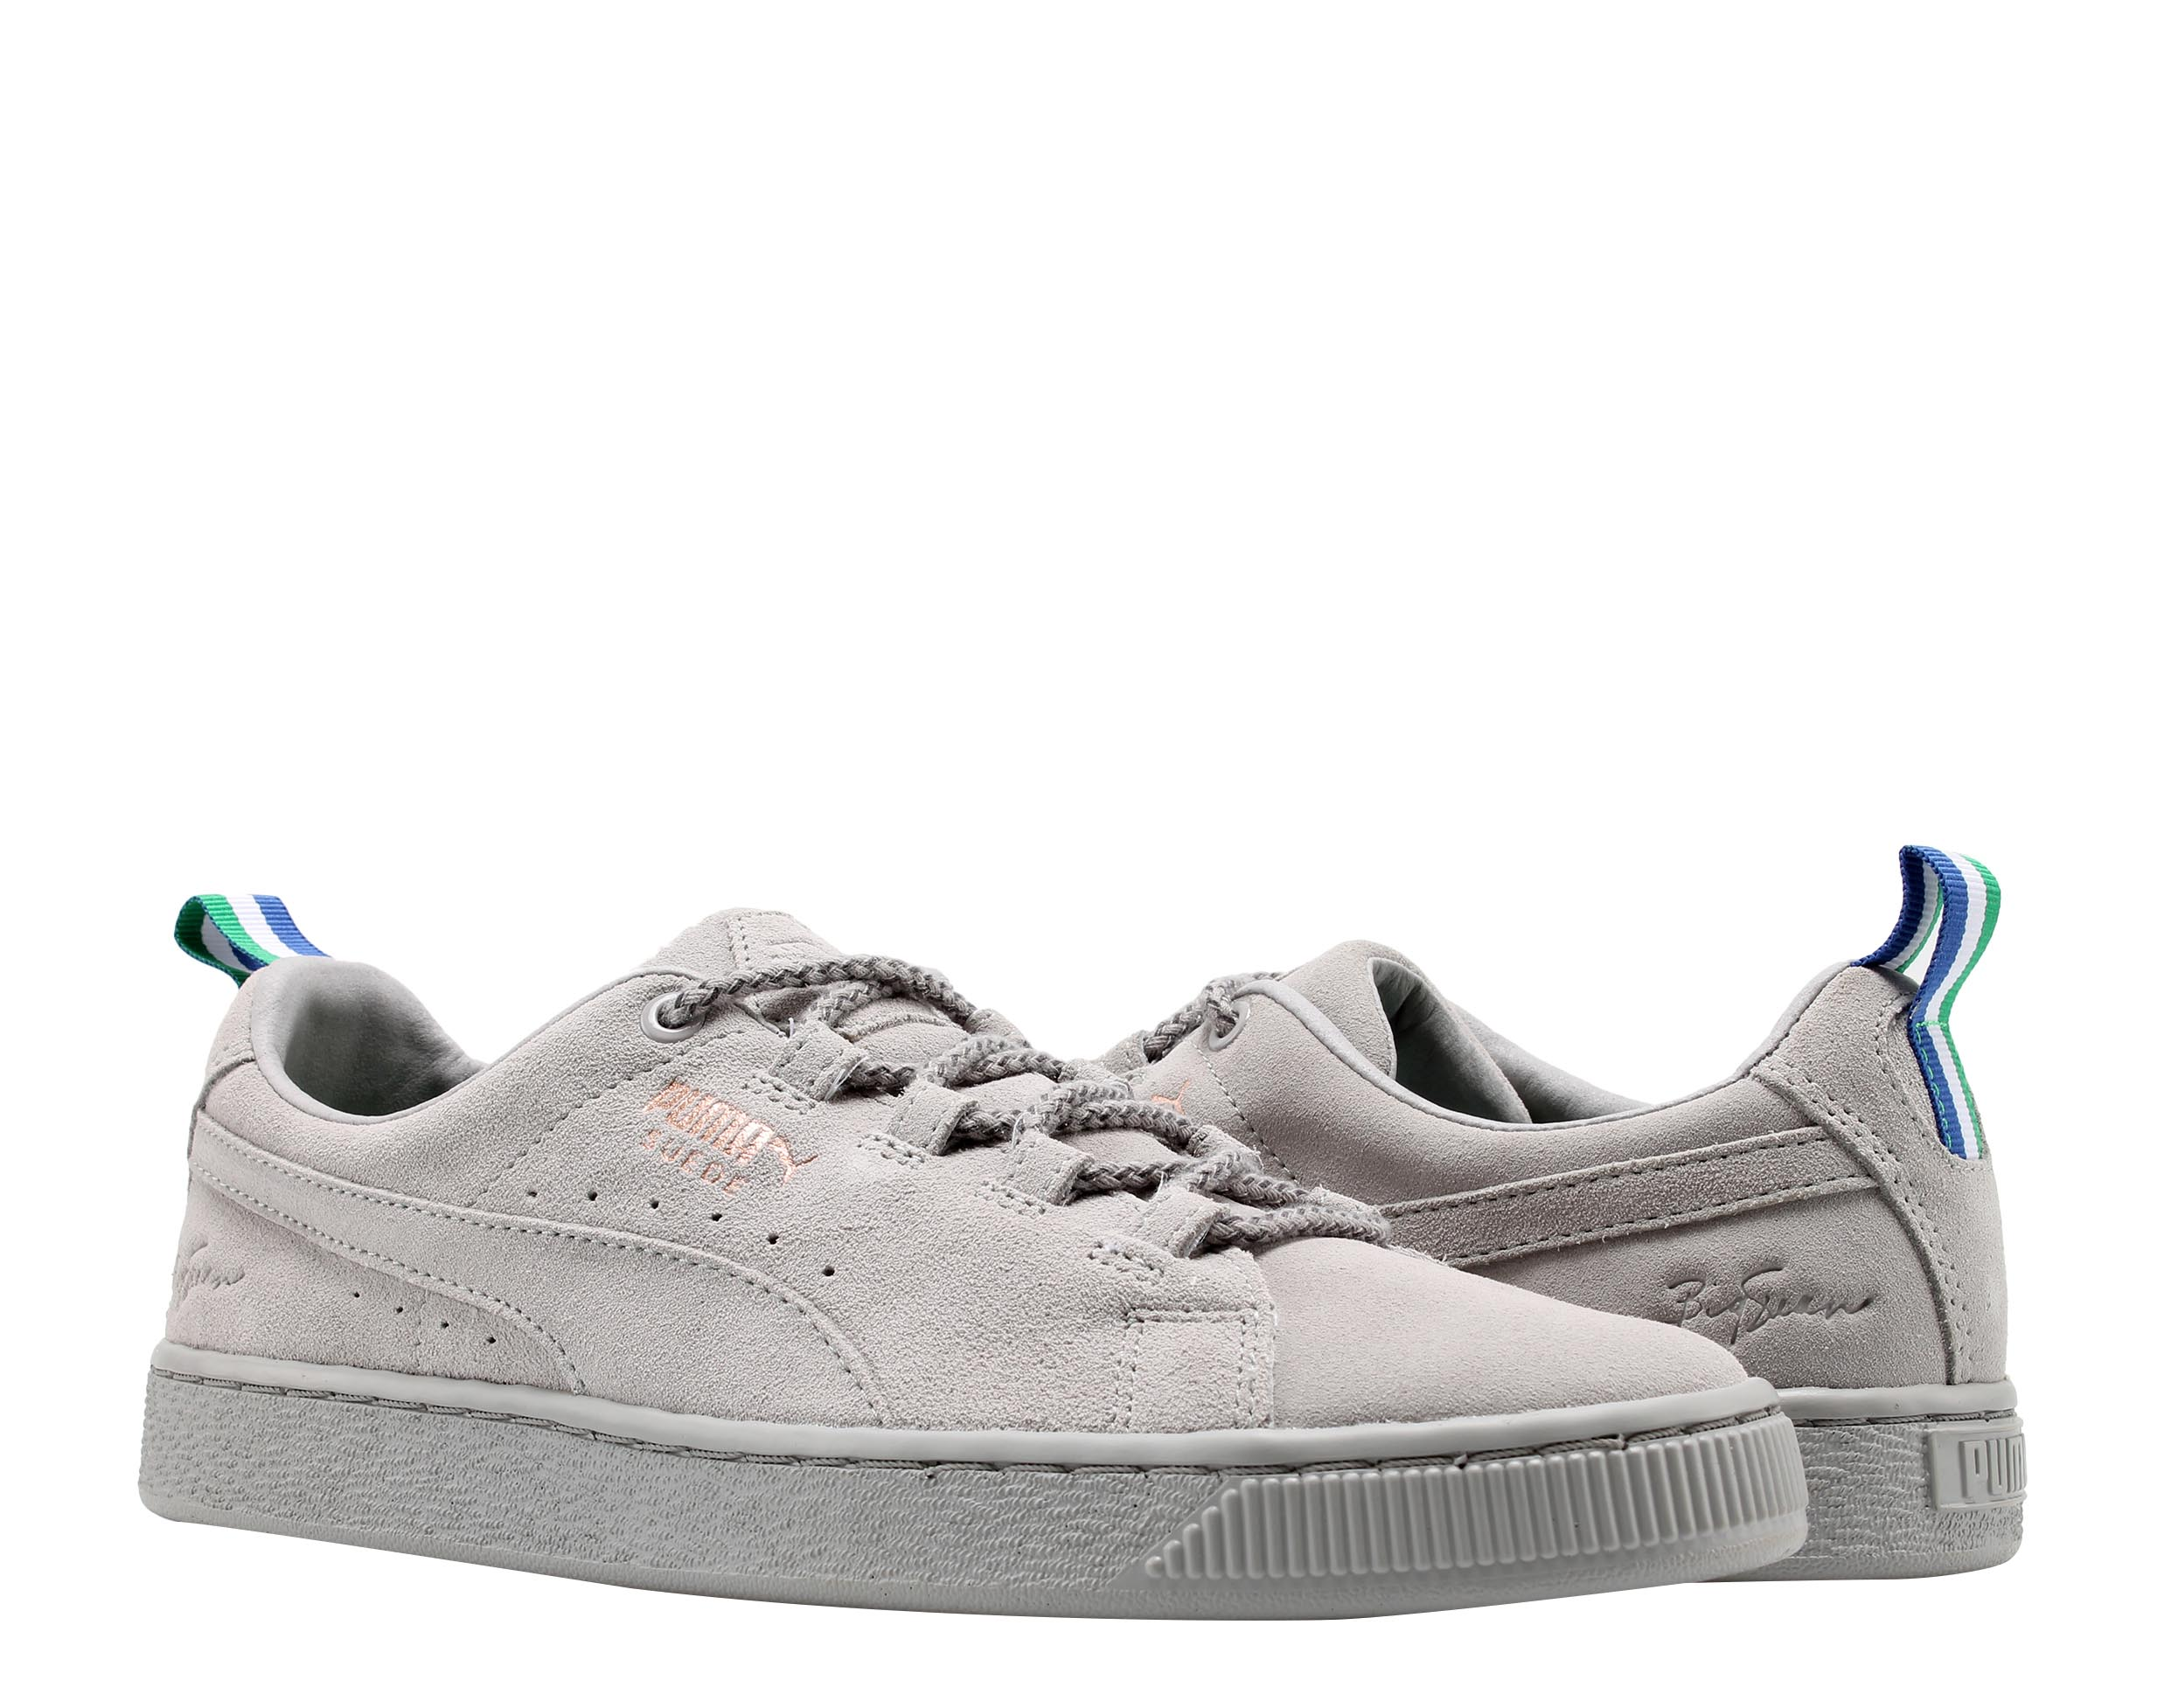 super popular a5ba5 9d63c Puma Suede BIG SEAN Ash-Ash/Grey Men's Casual Sneakers 36625101